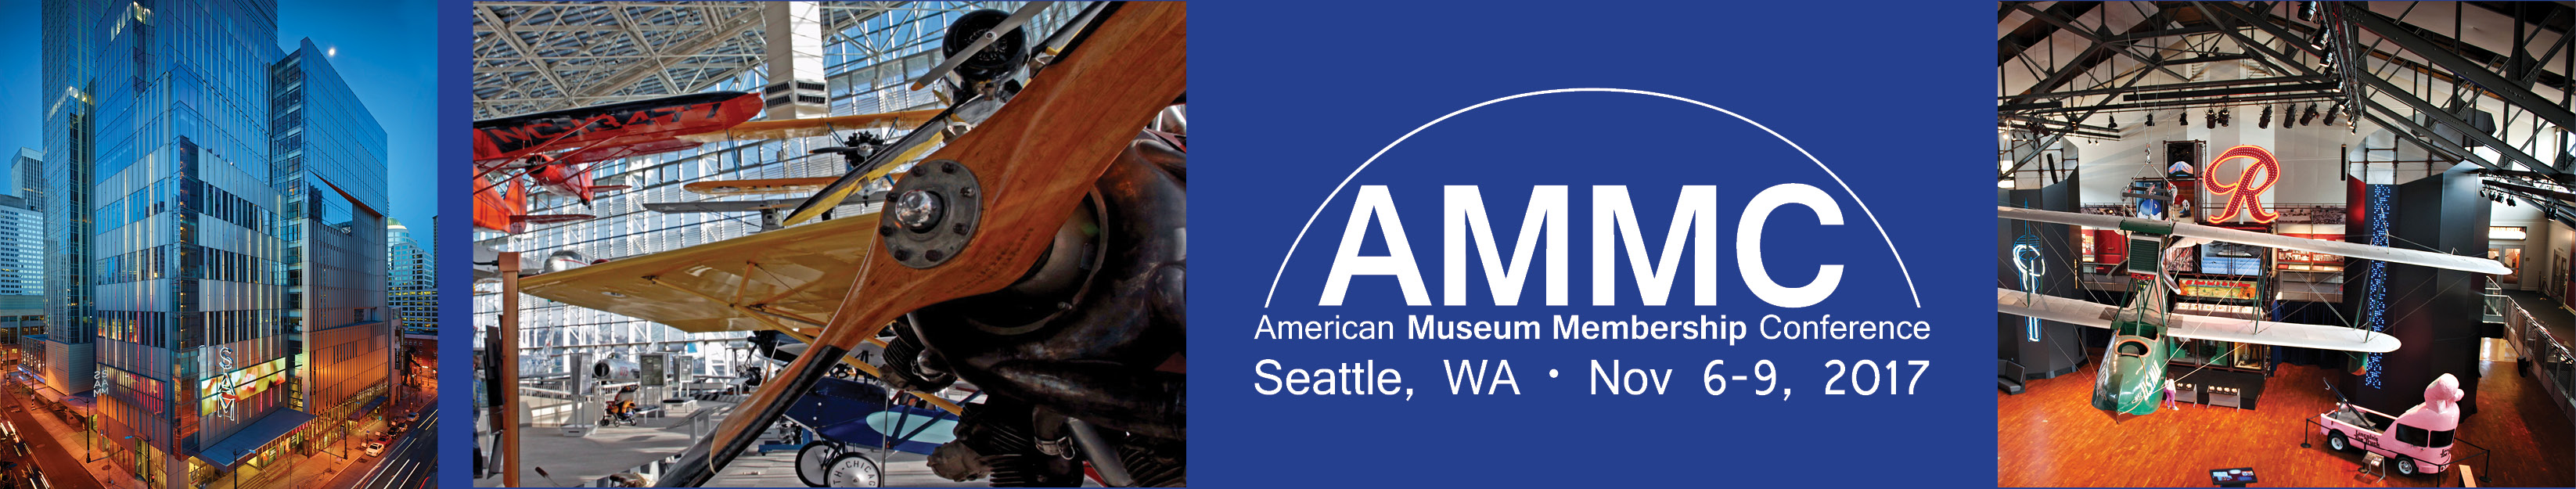 American Museum Membership Conference - Seattle, WA